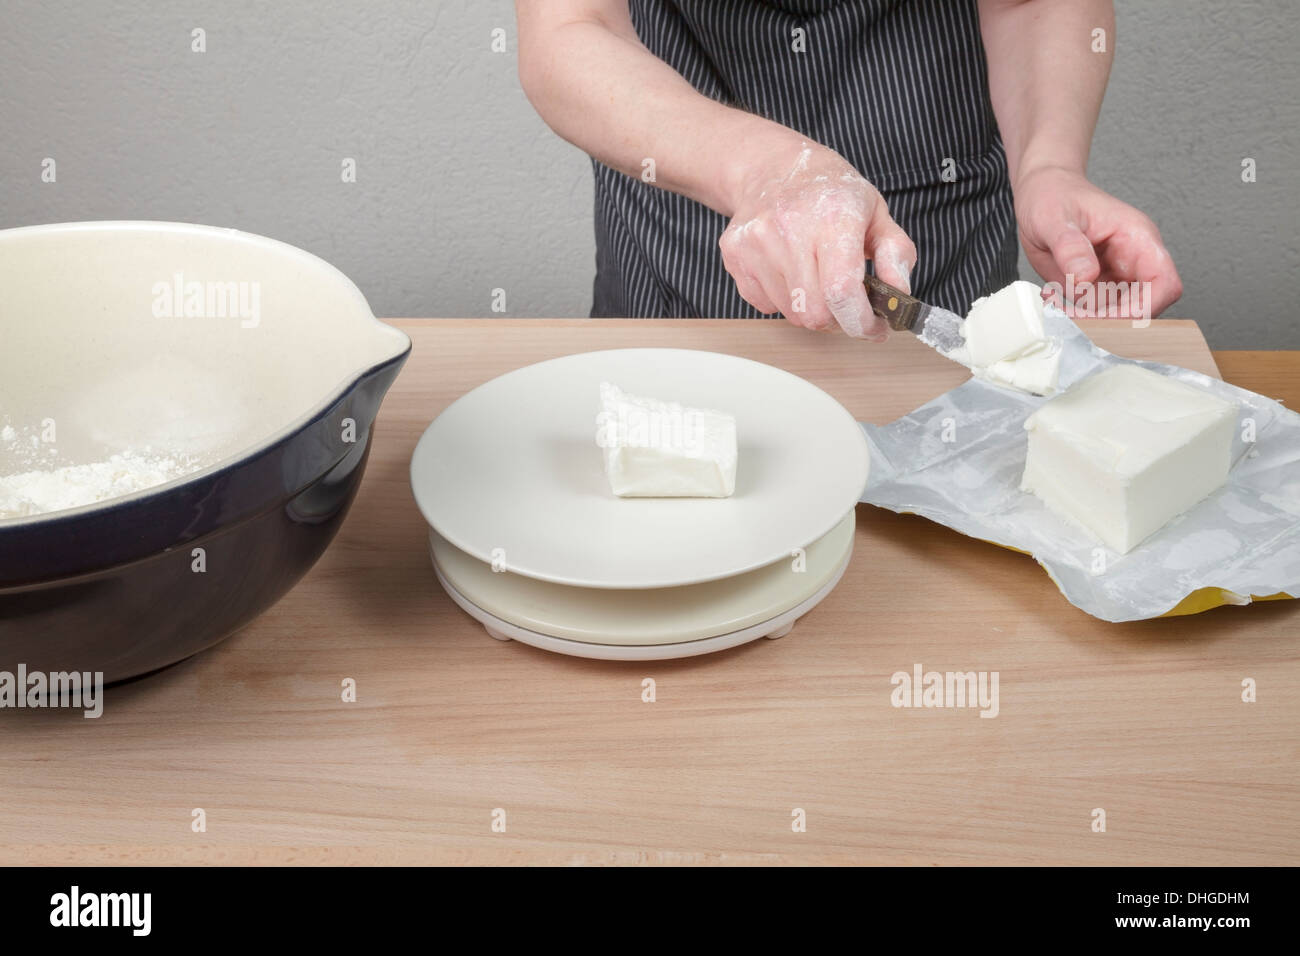 cutting and weighing fat - Stock Image